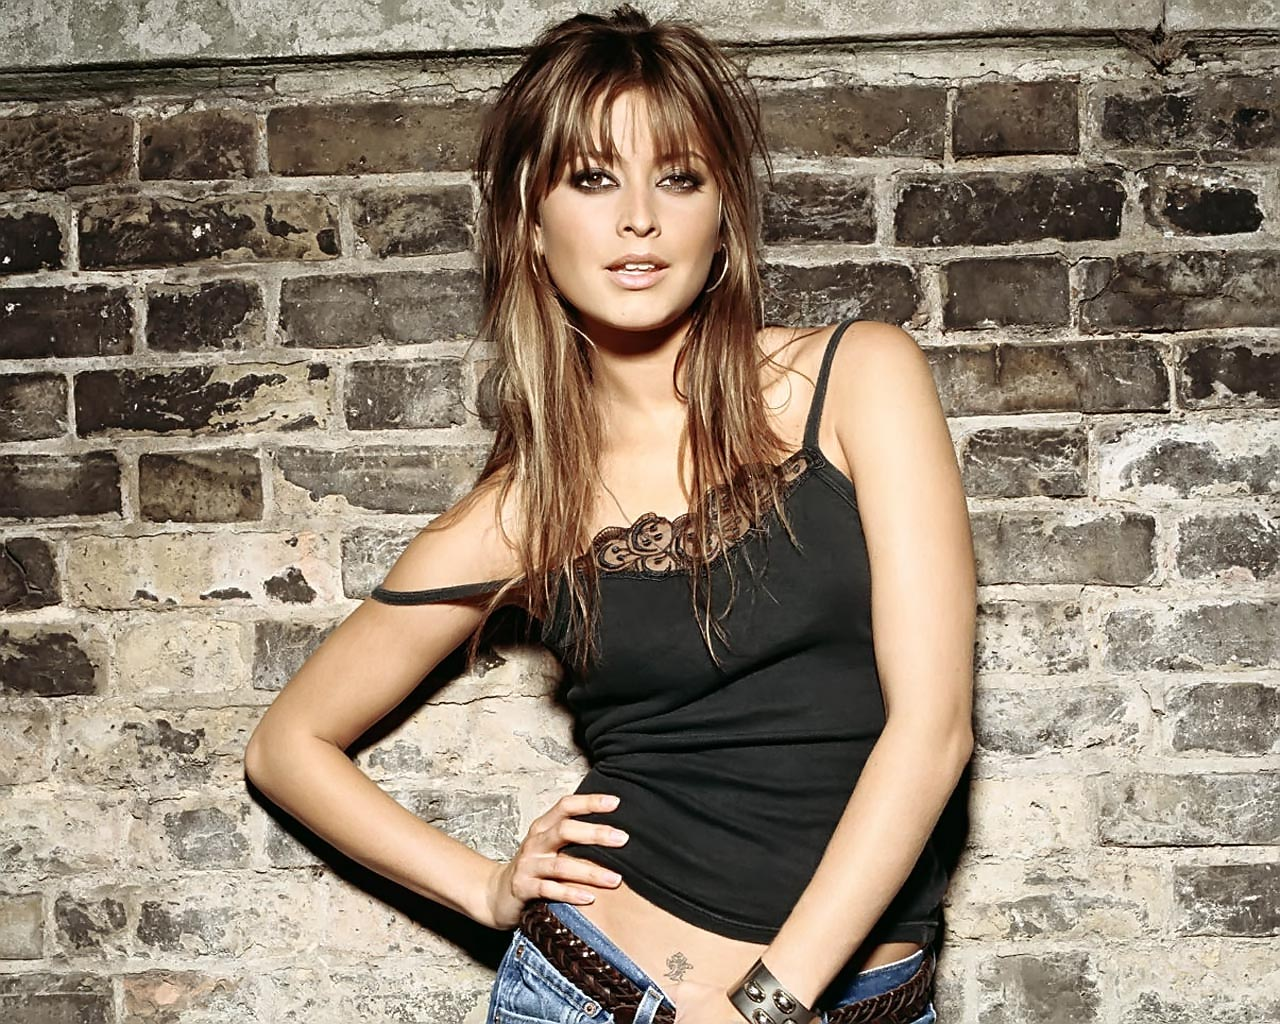 Top 10 Best Holly Valance Movies and TV shows | All Time Best